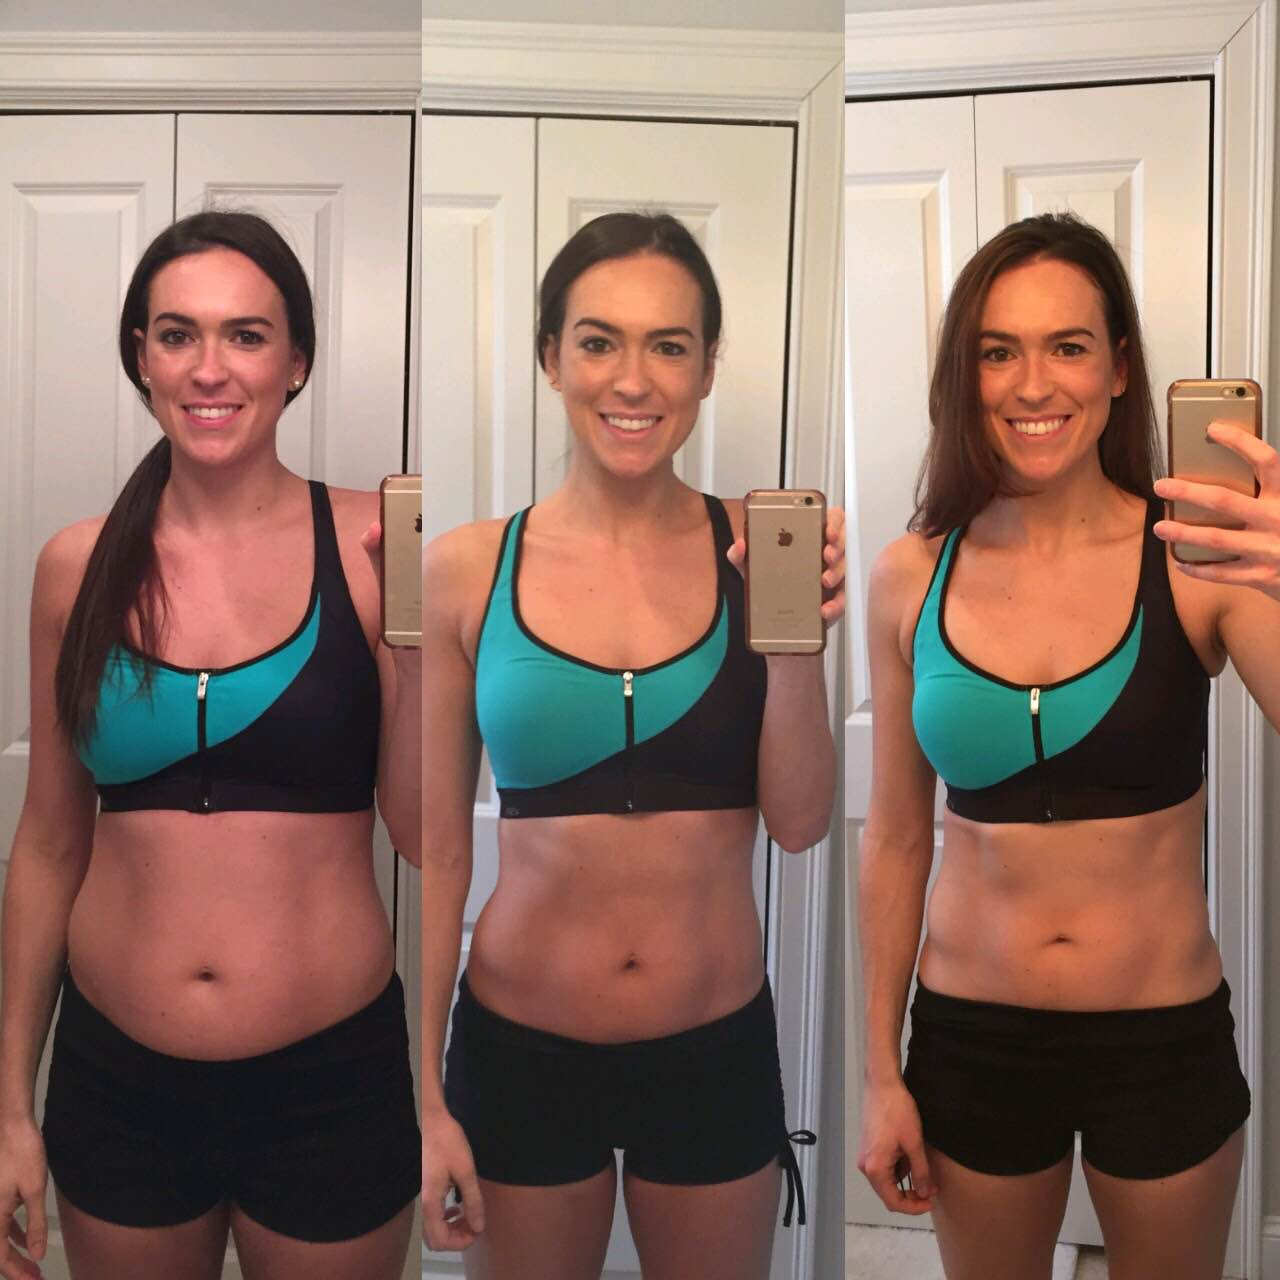 Women Insanity Results Without Diet